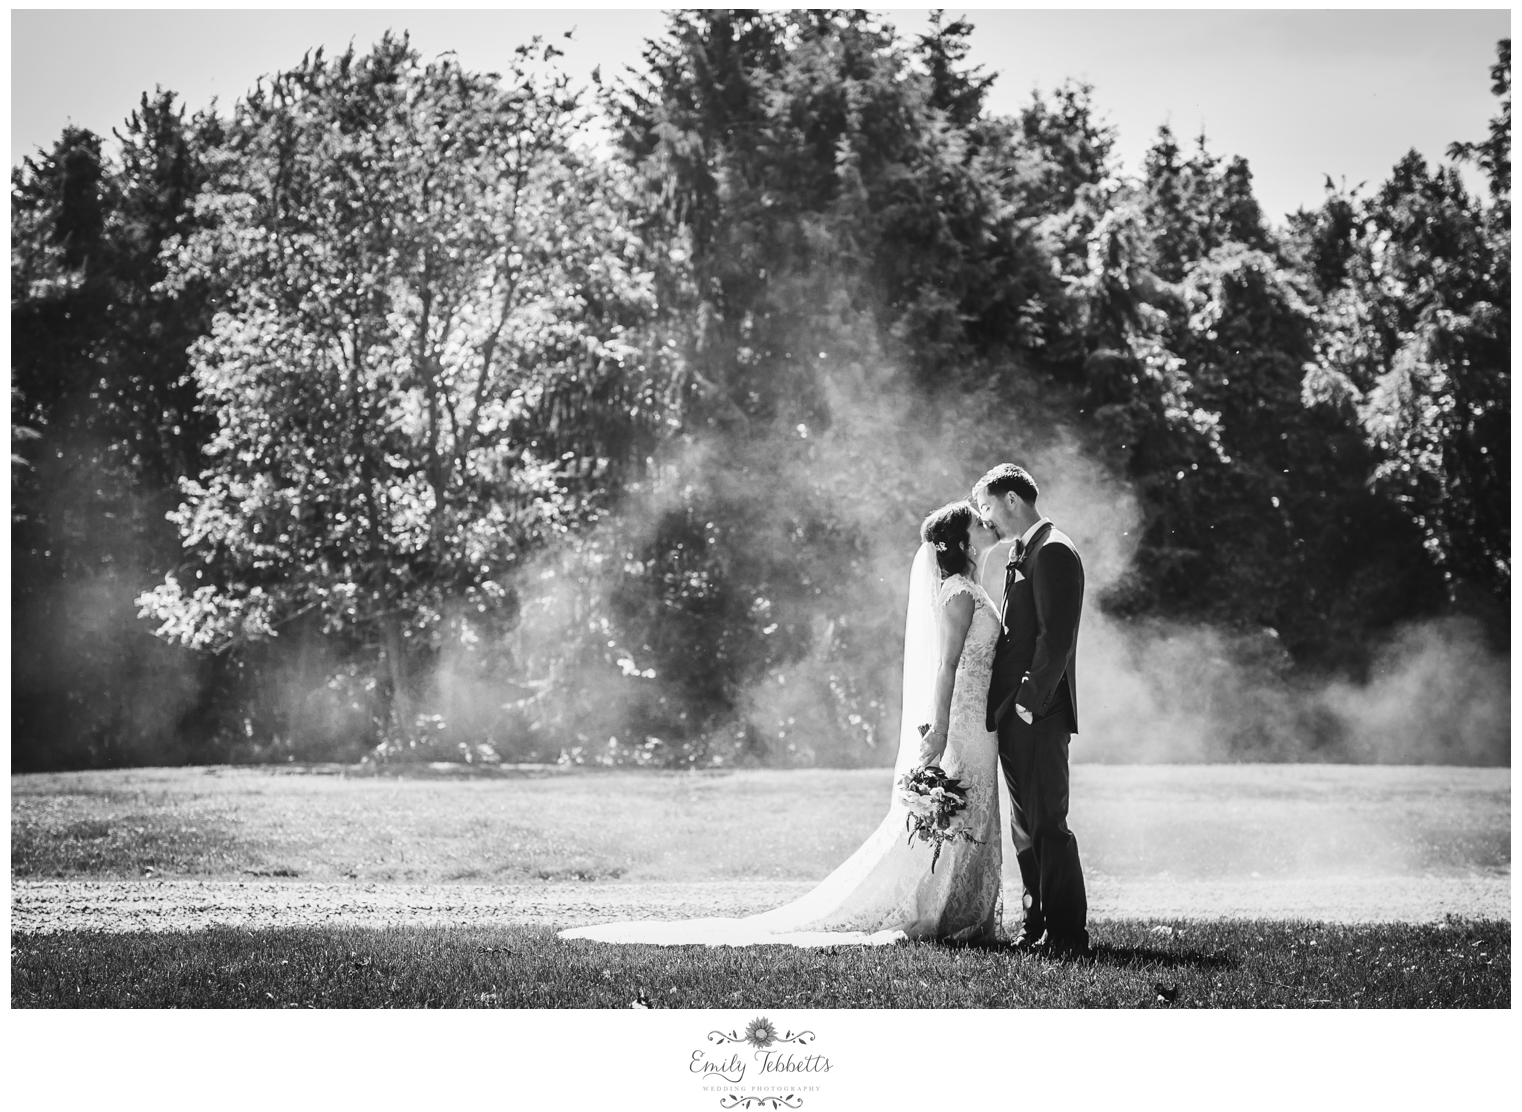 Emily Tebbetts Photography - webb barn wedding wethersfield ct connecticut rustic chic wedding first look fathers day emotional -3.jpg